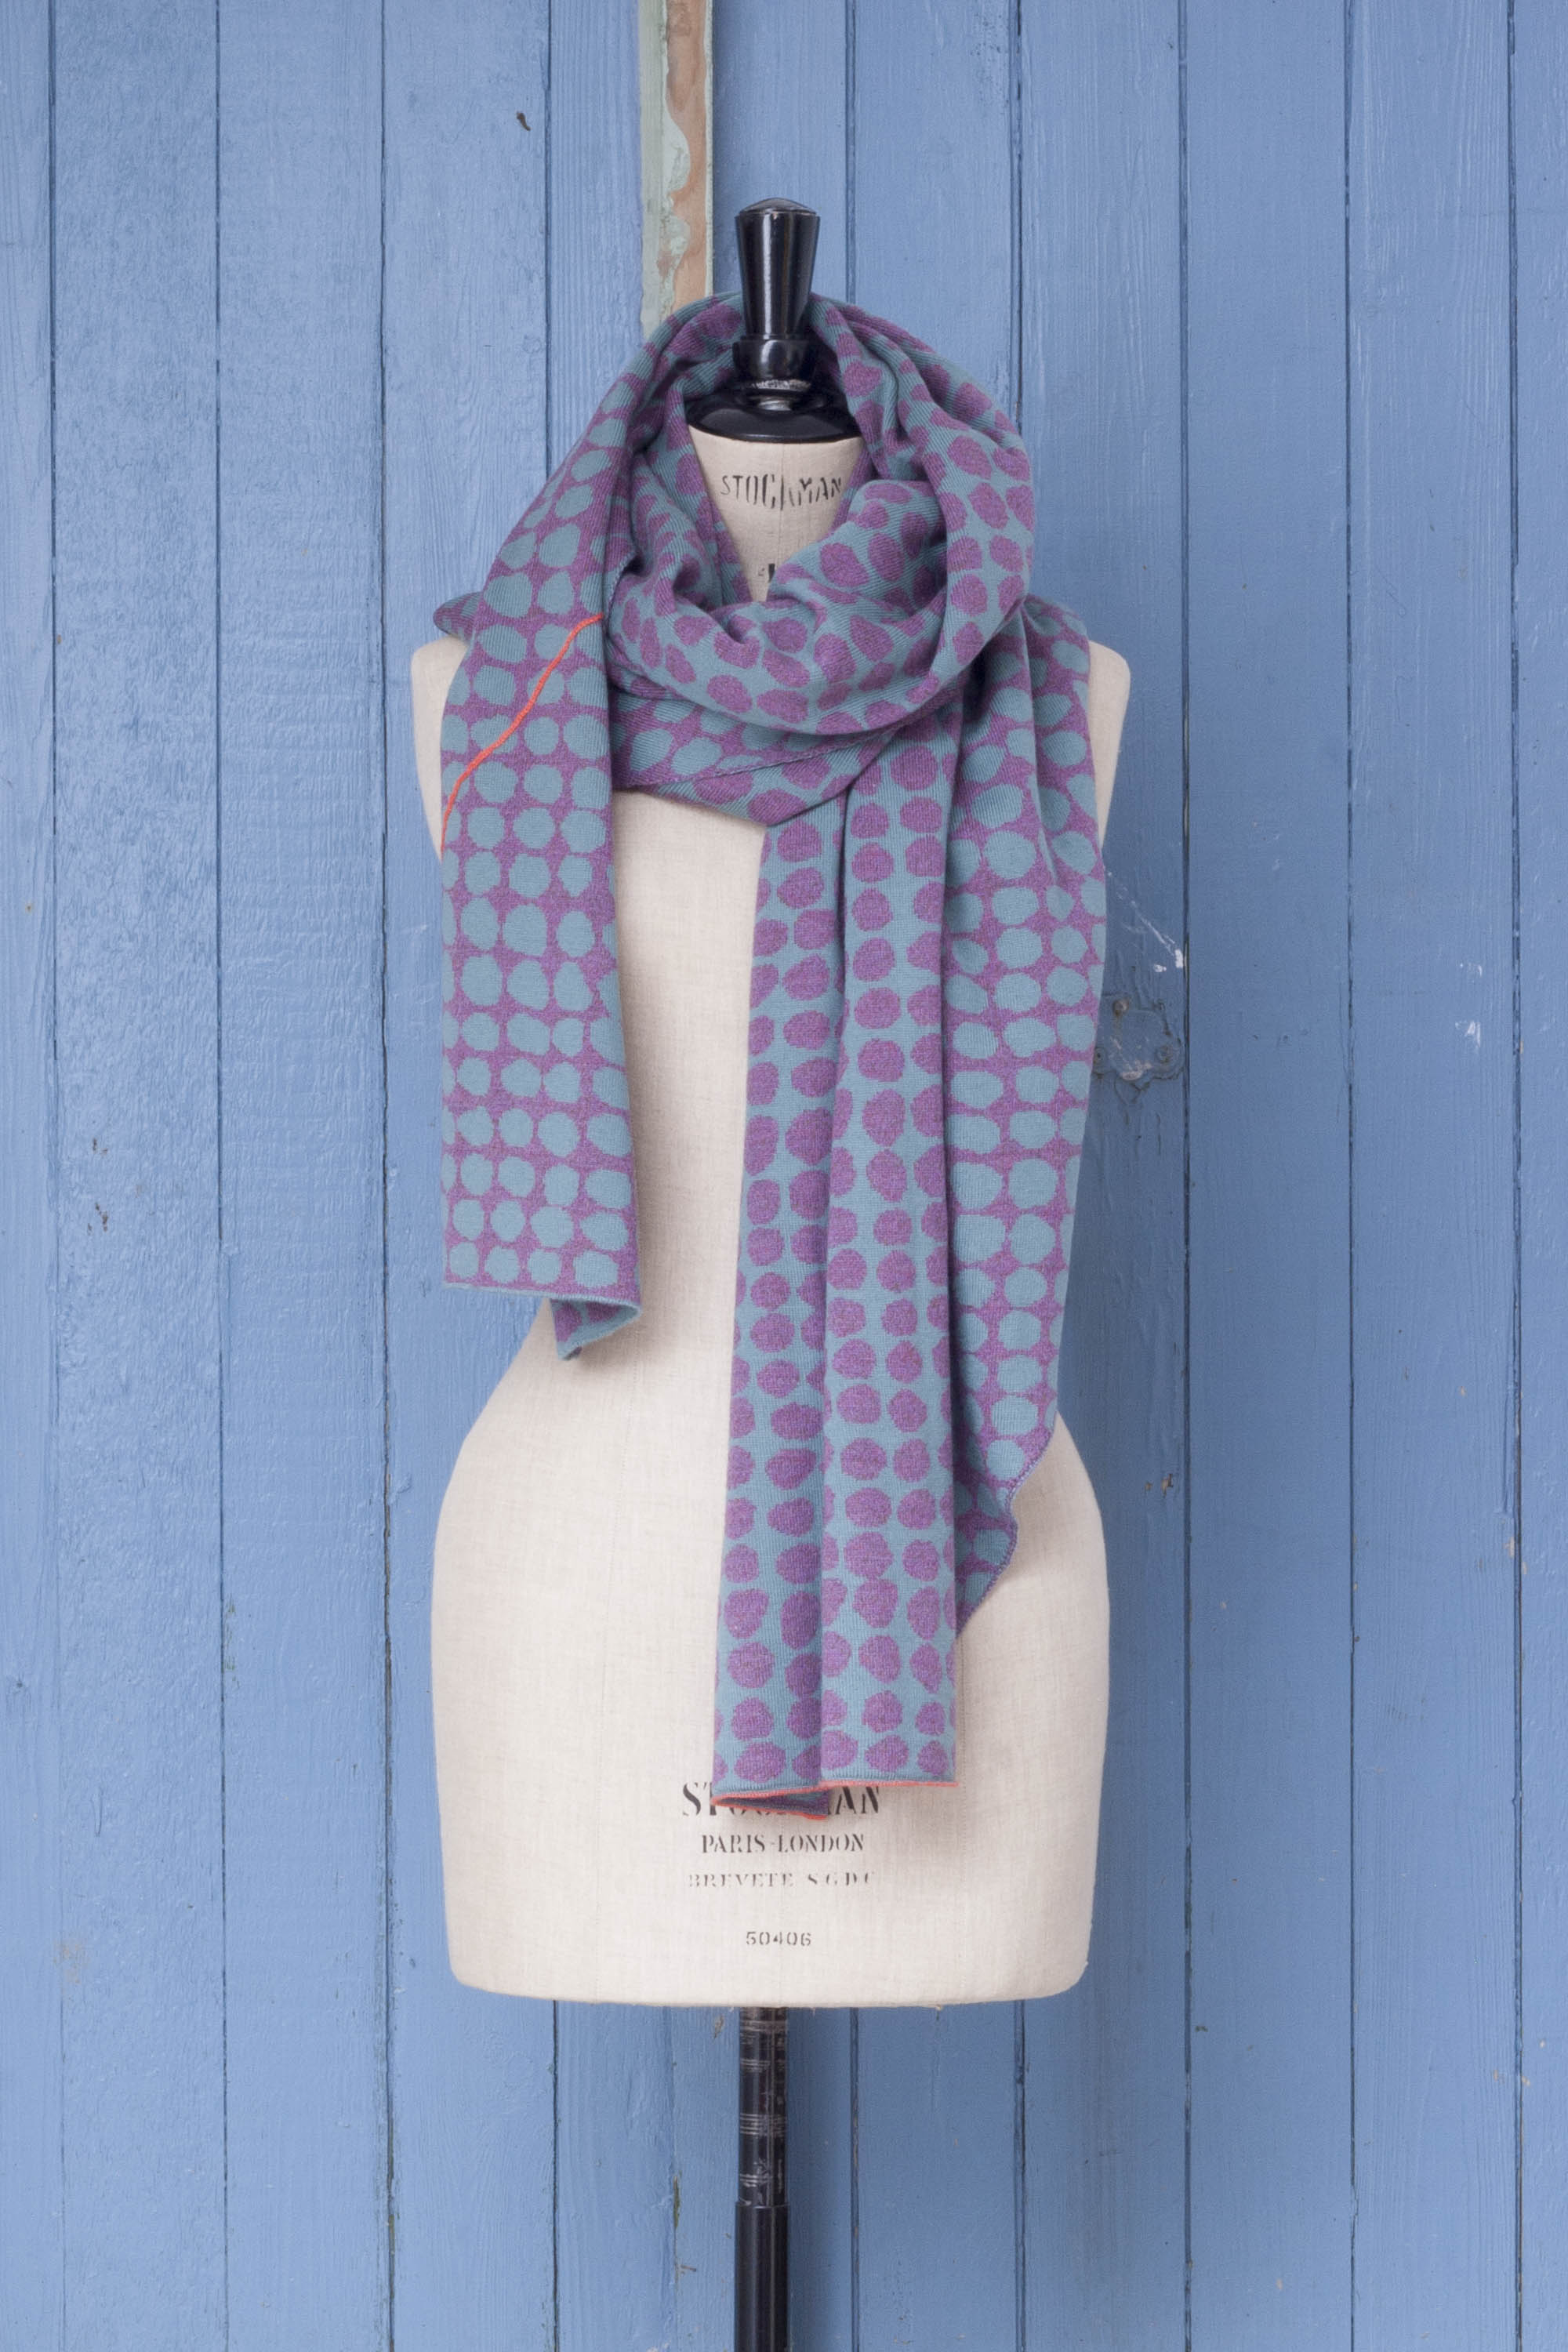 Ebb-stanes contemporary Shetland shawl made in Scotland. Pebble design in lilac and blue with hot pink individually drawn line